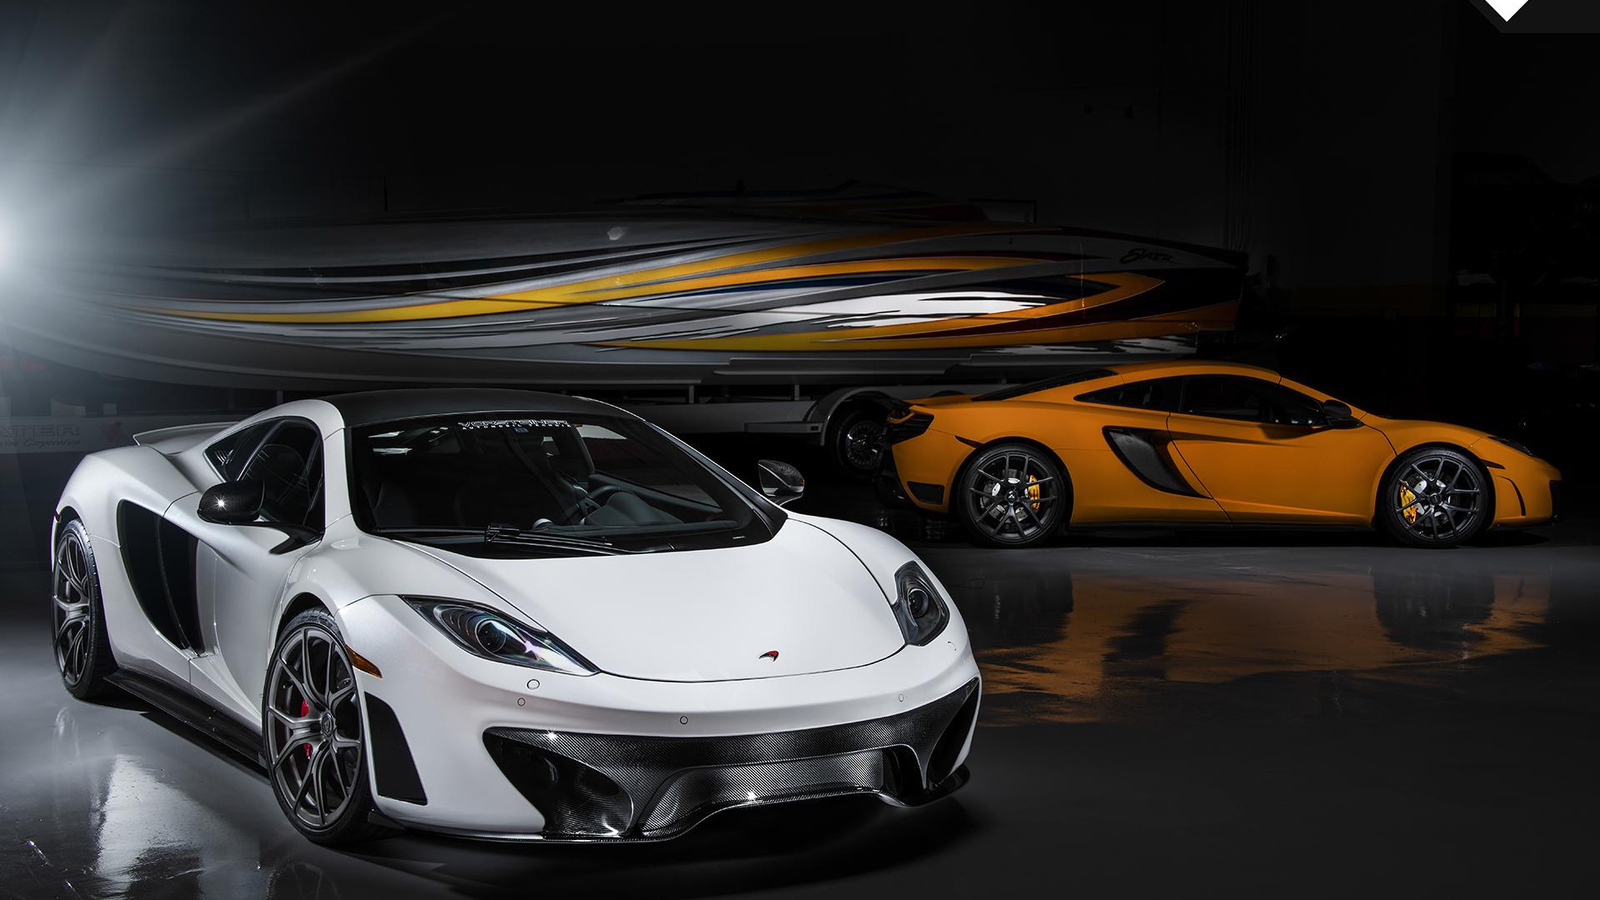 30 Pic Of Supercar In High Definition